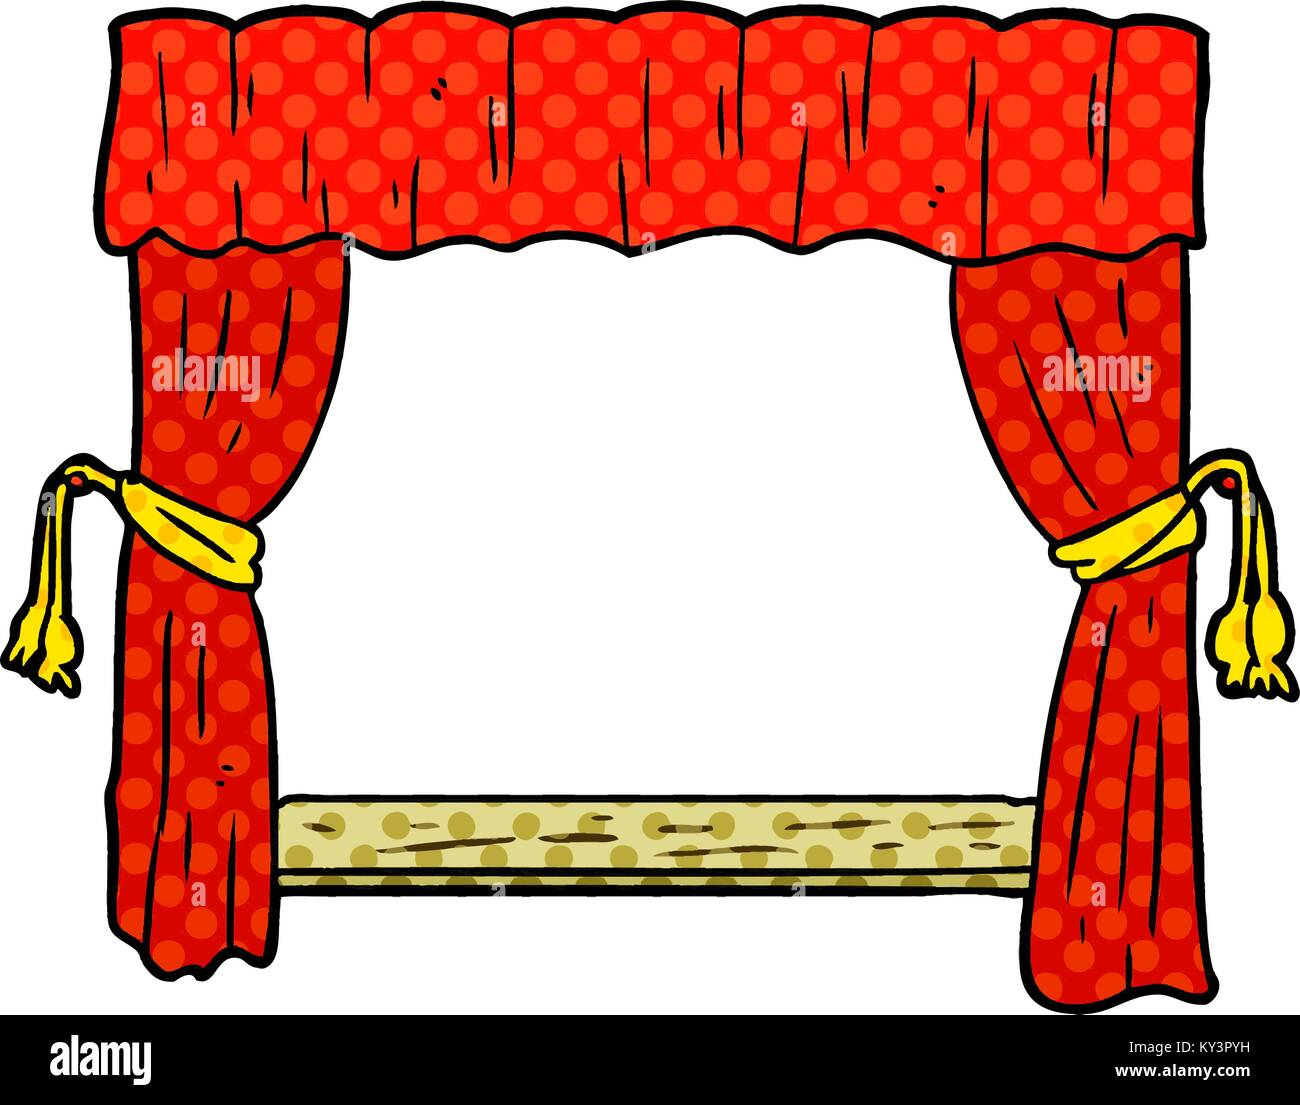 Cartoon Curtains Opening Onto Stage